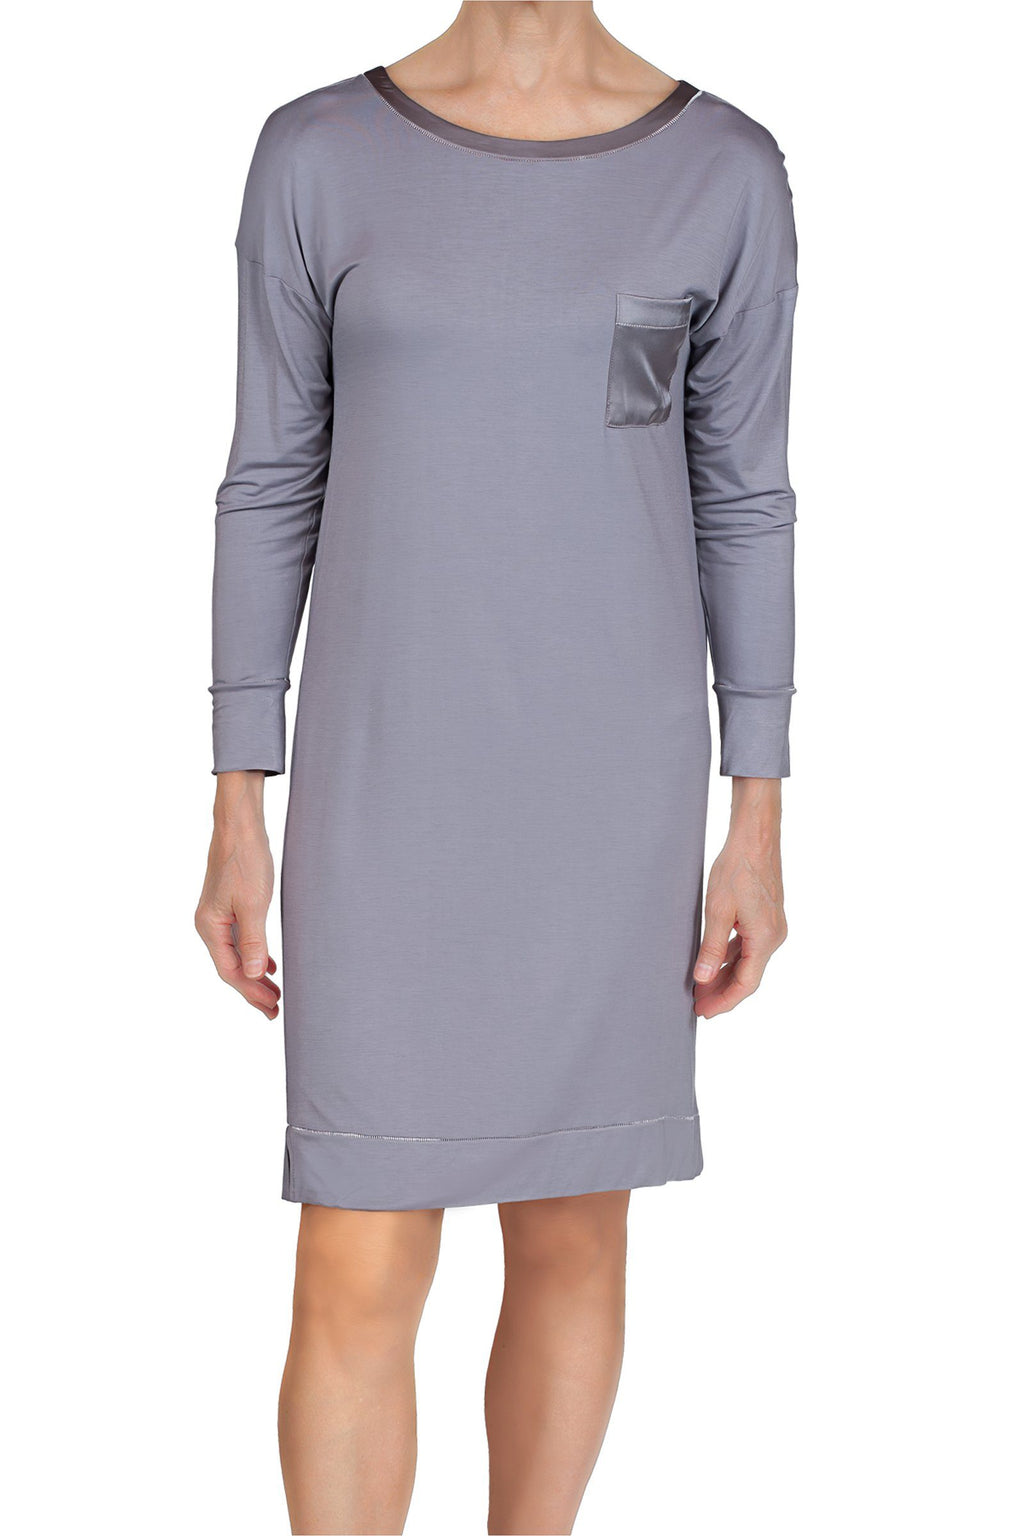 Madison Bamboo Knit Sleepshirt - Iris Gray Mystique Intimates